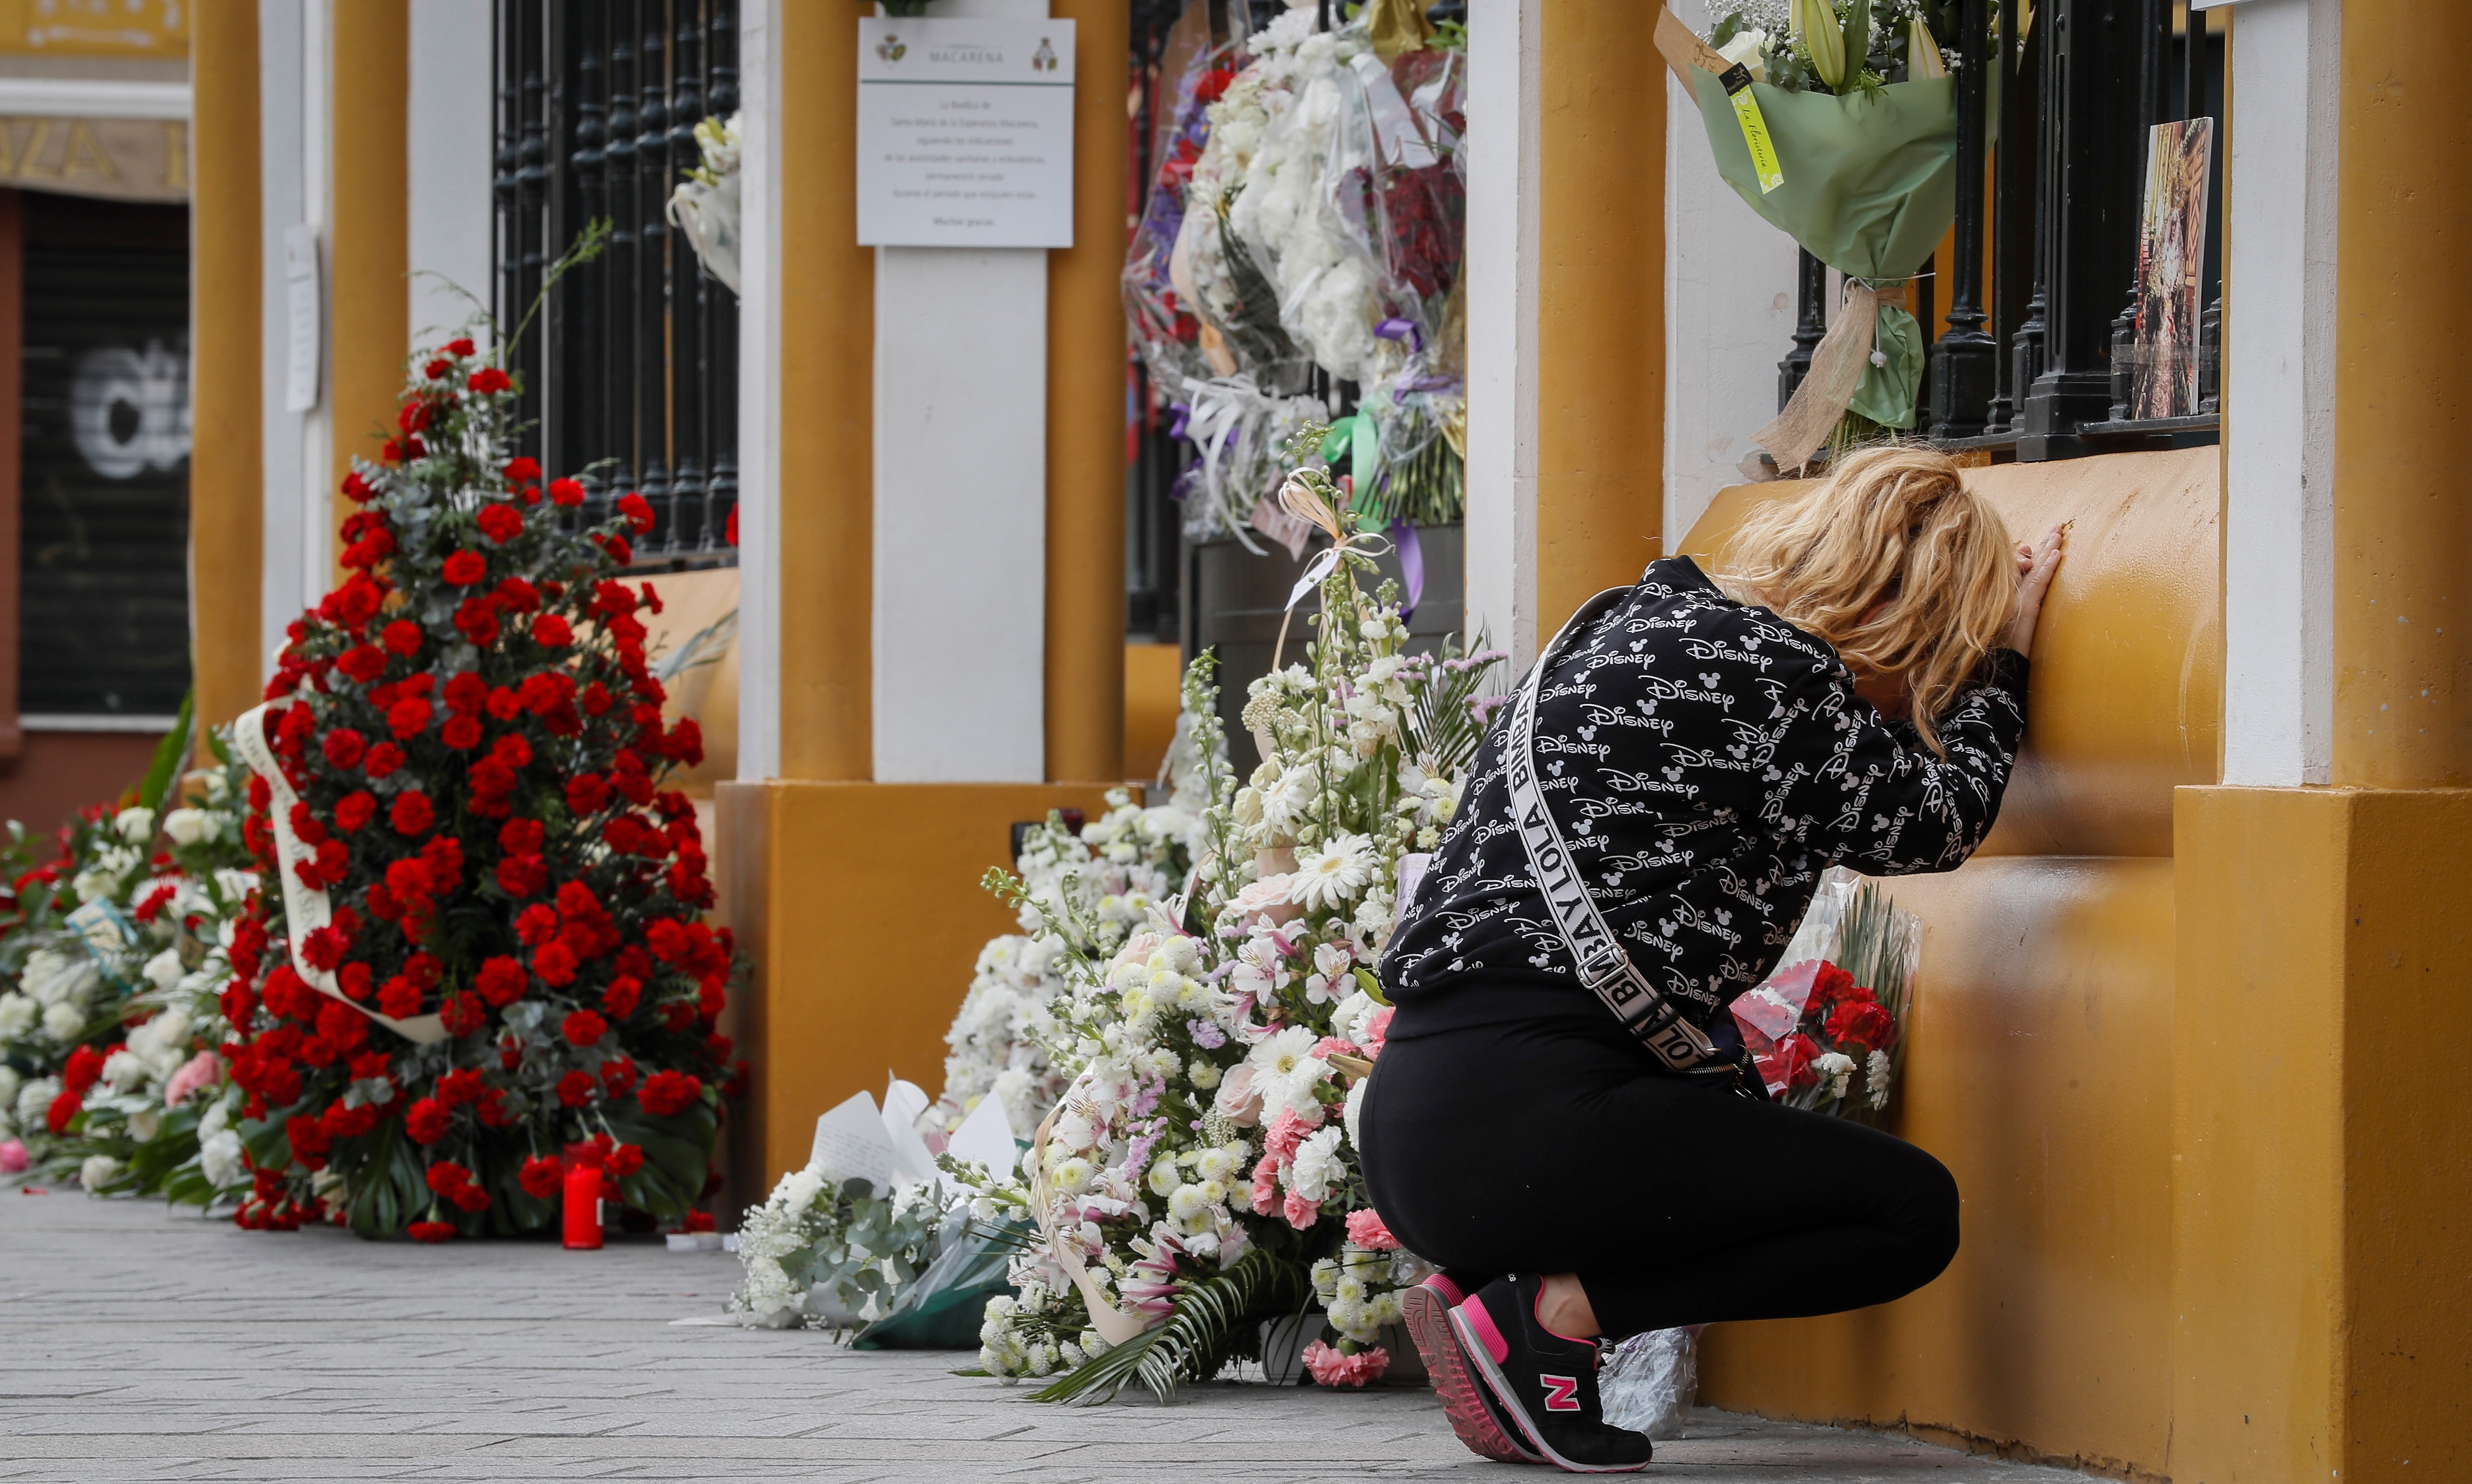 A woman prays next to some flowers laid in front of closed church in southern Spain.